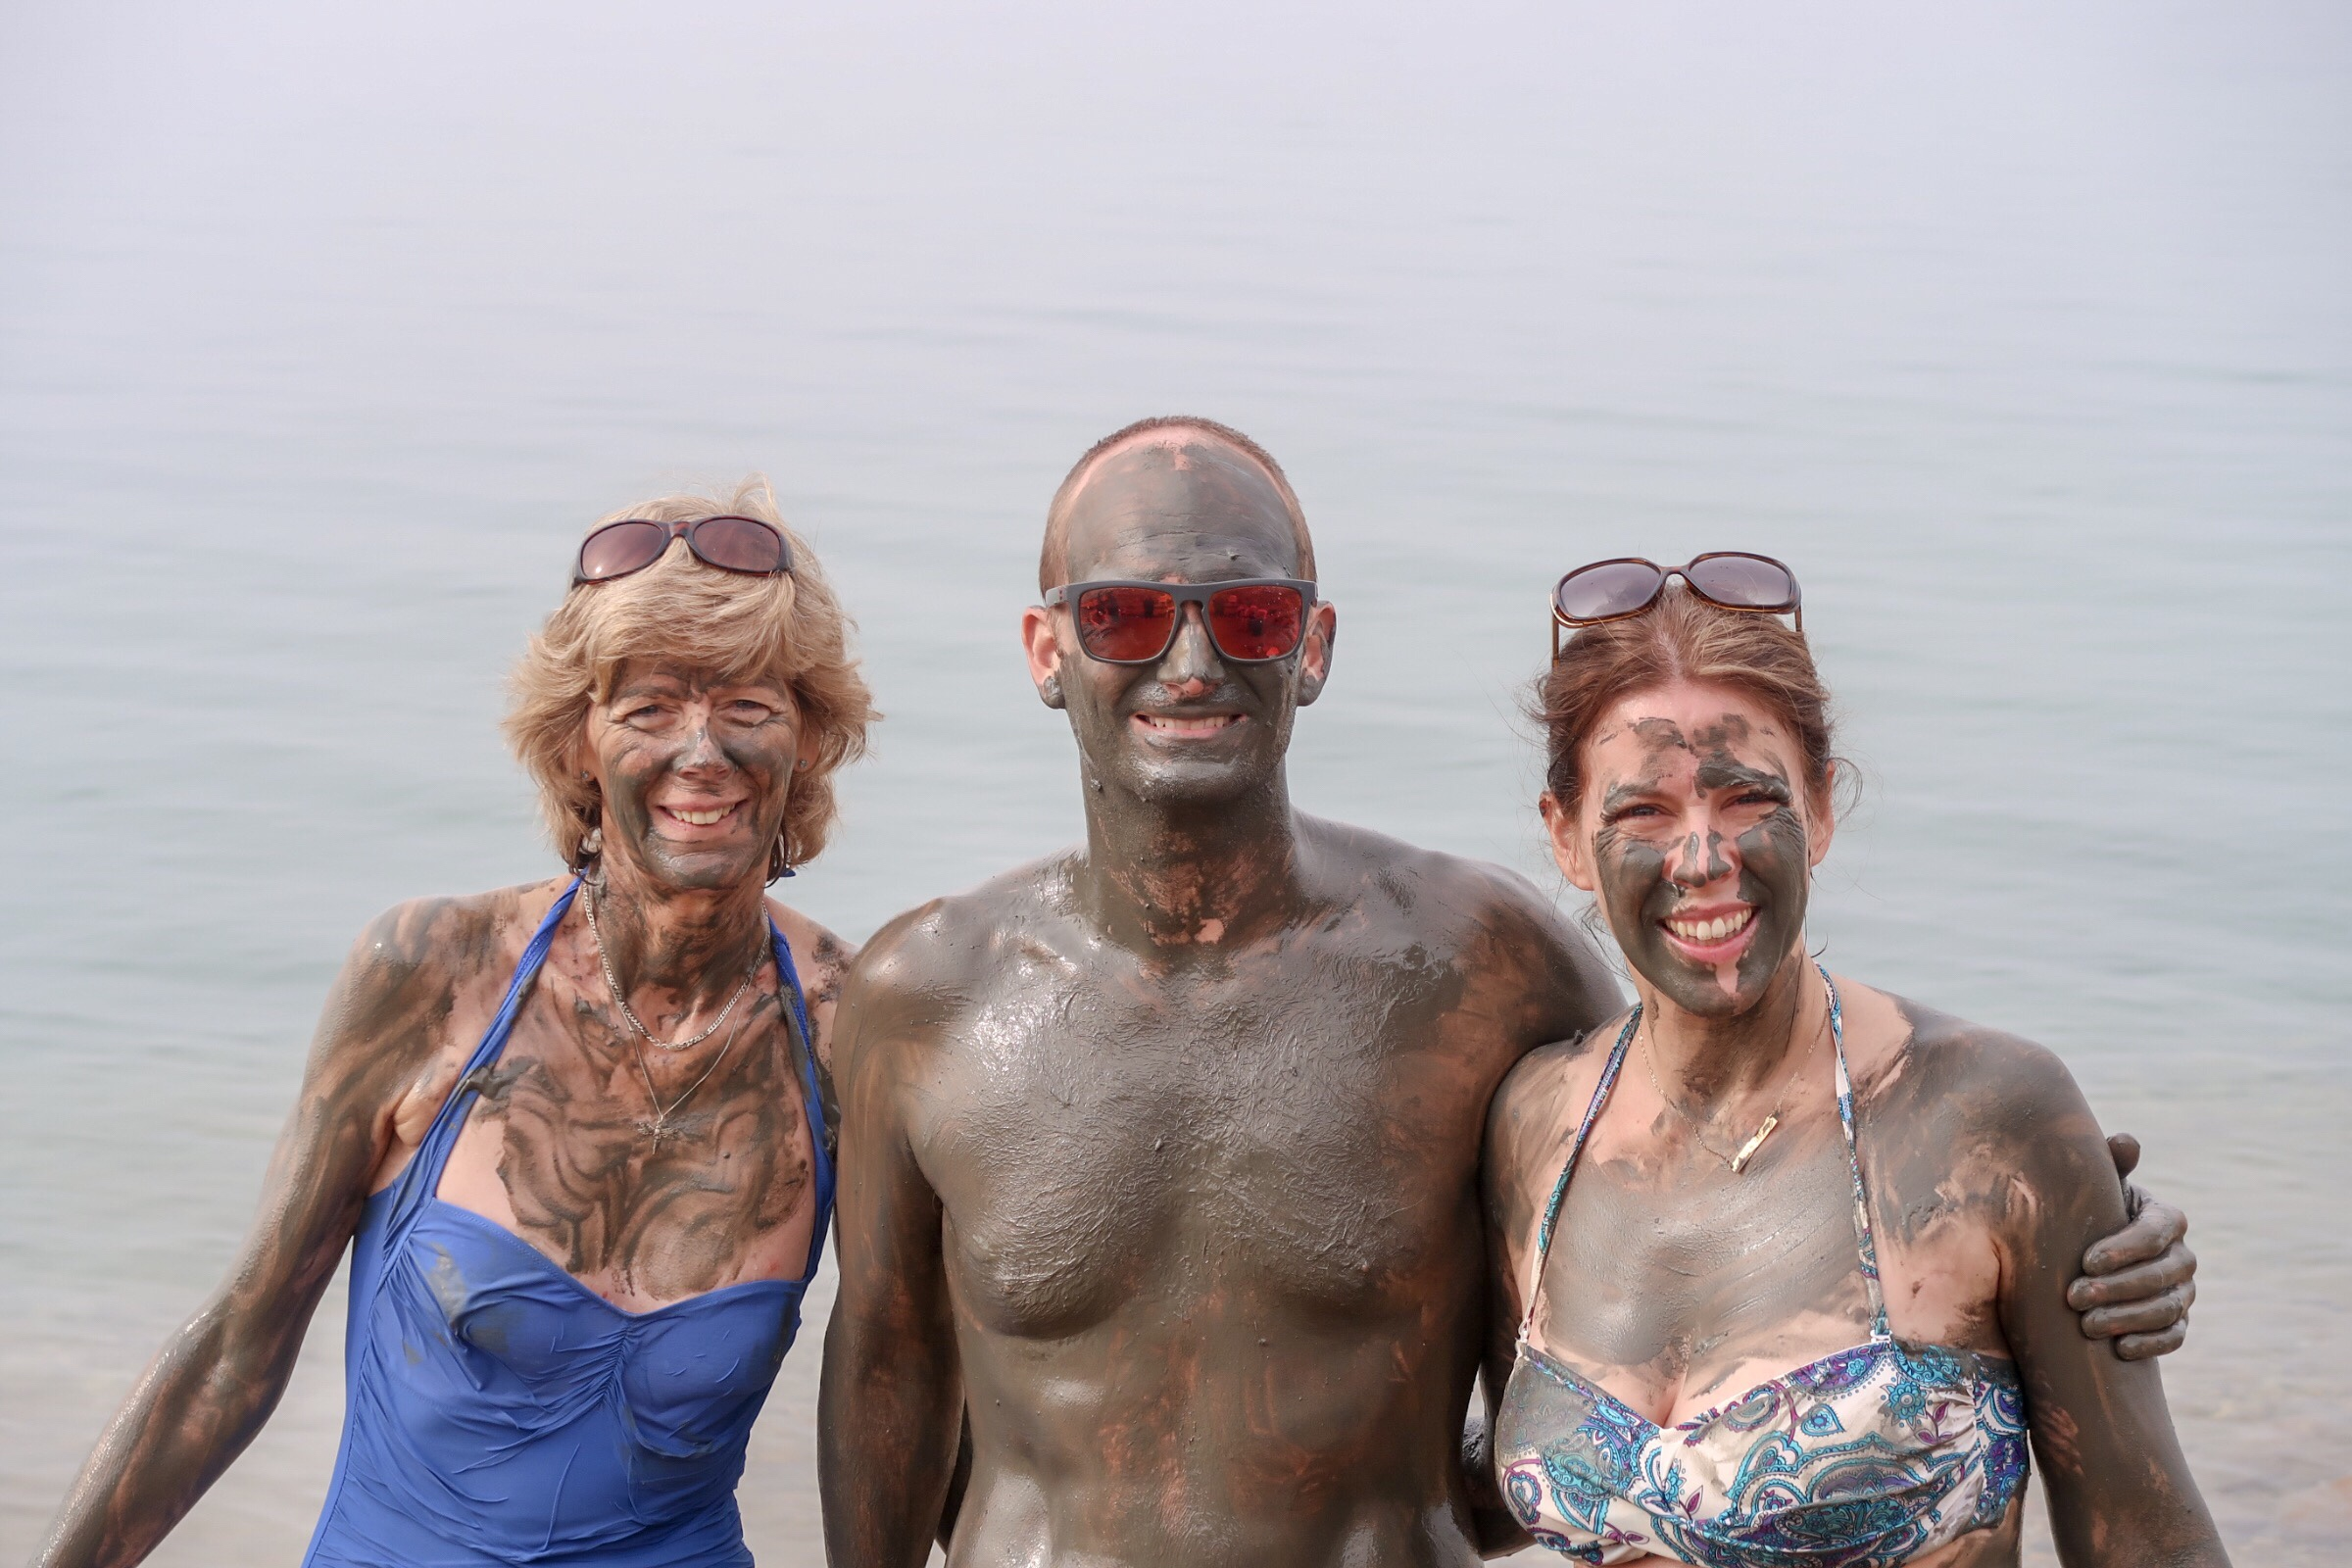 Jordan Adventures Part 2 - the Dead Sea. Granny Wanderlust, Mr Wanderlust and I covered in Dead Sea mud..